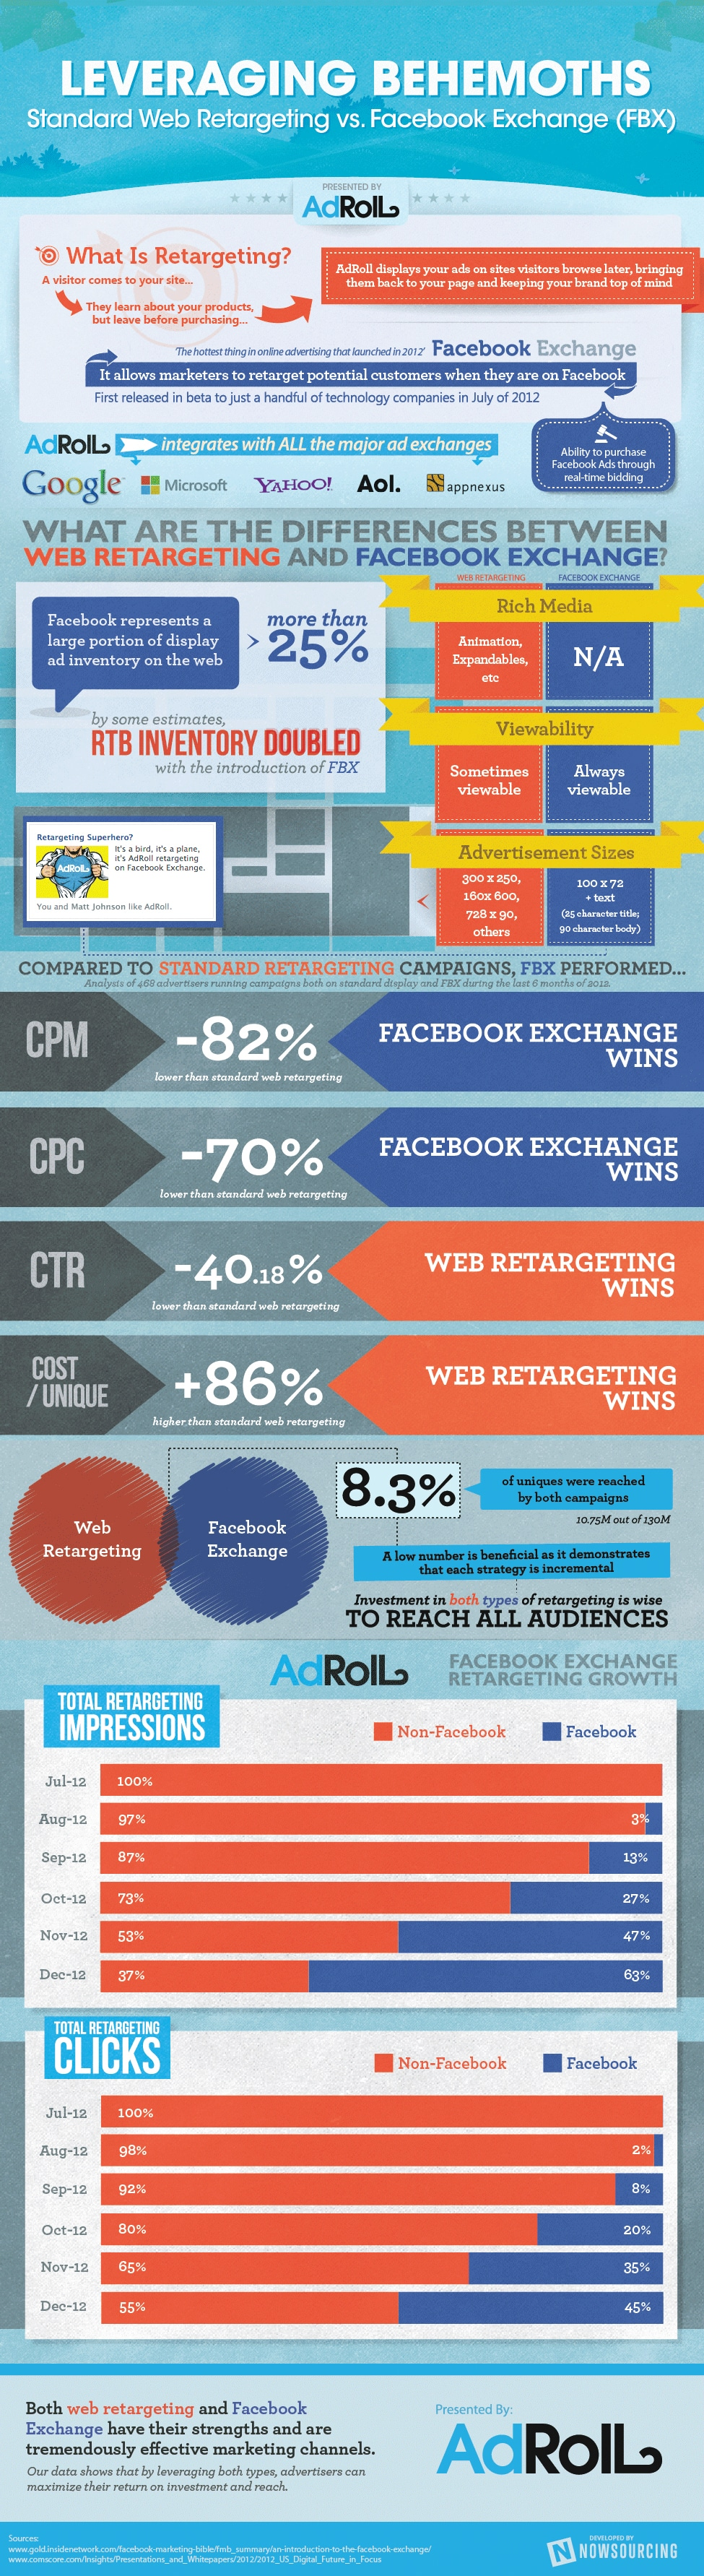 Facebook Exchange vs. Web Retargeted Ads: Pros & Cons [Infographic]